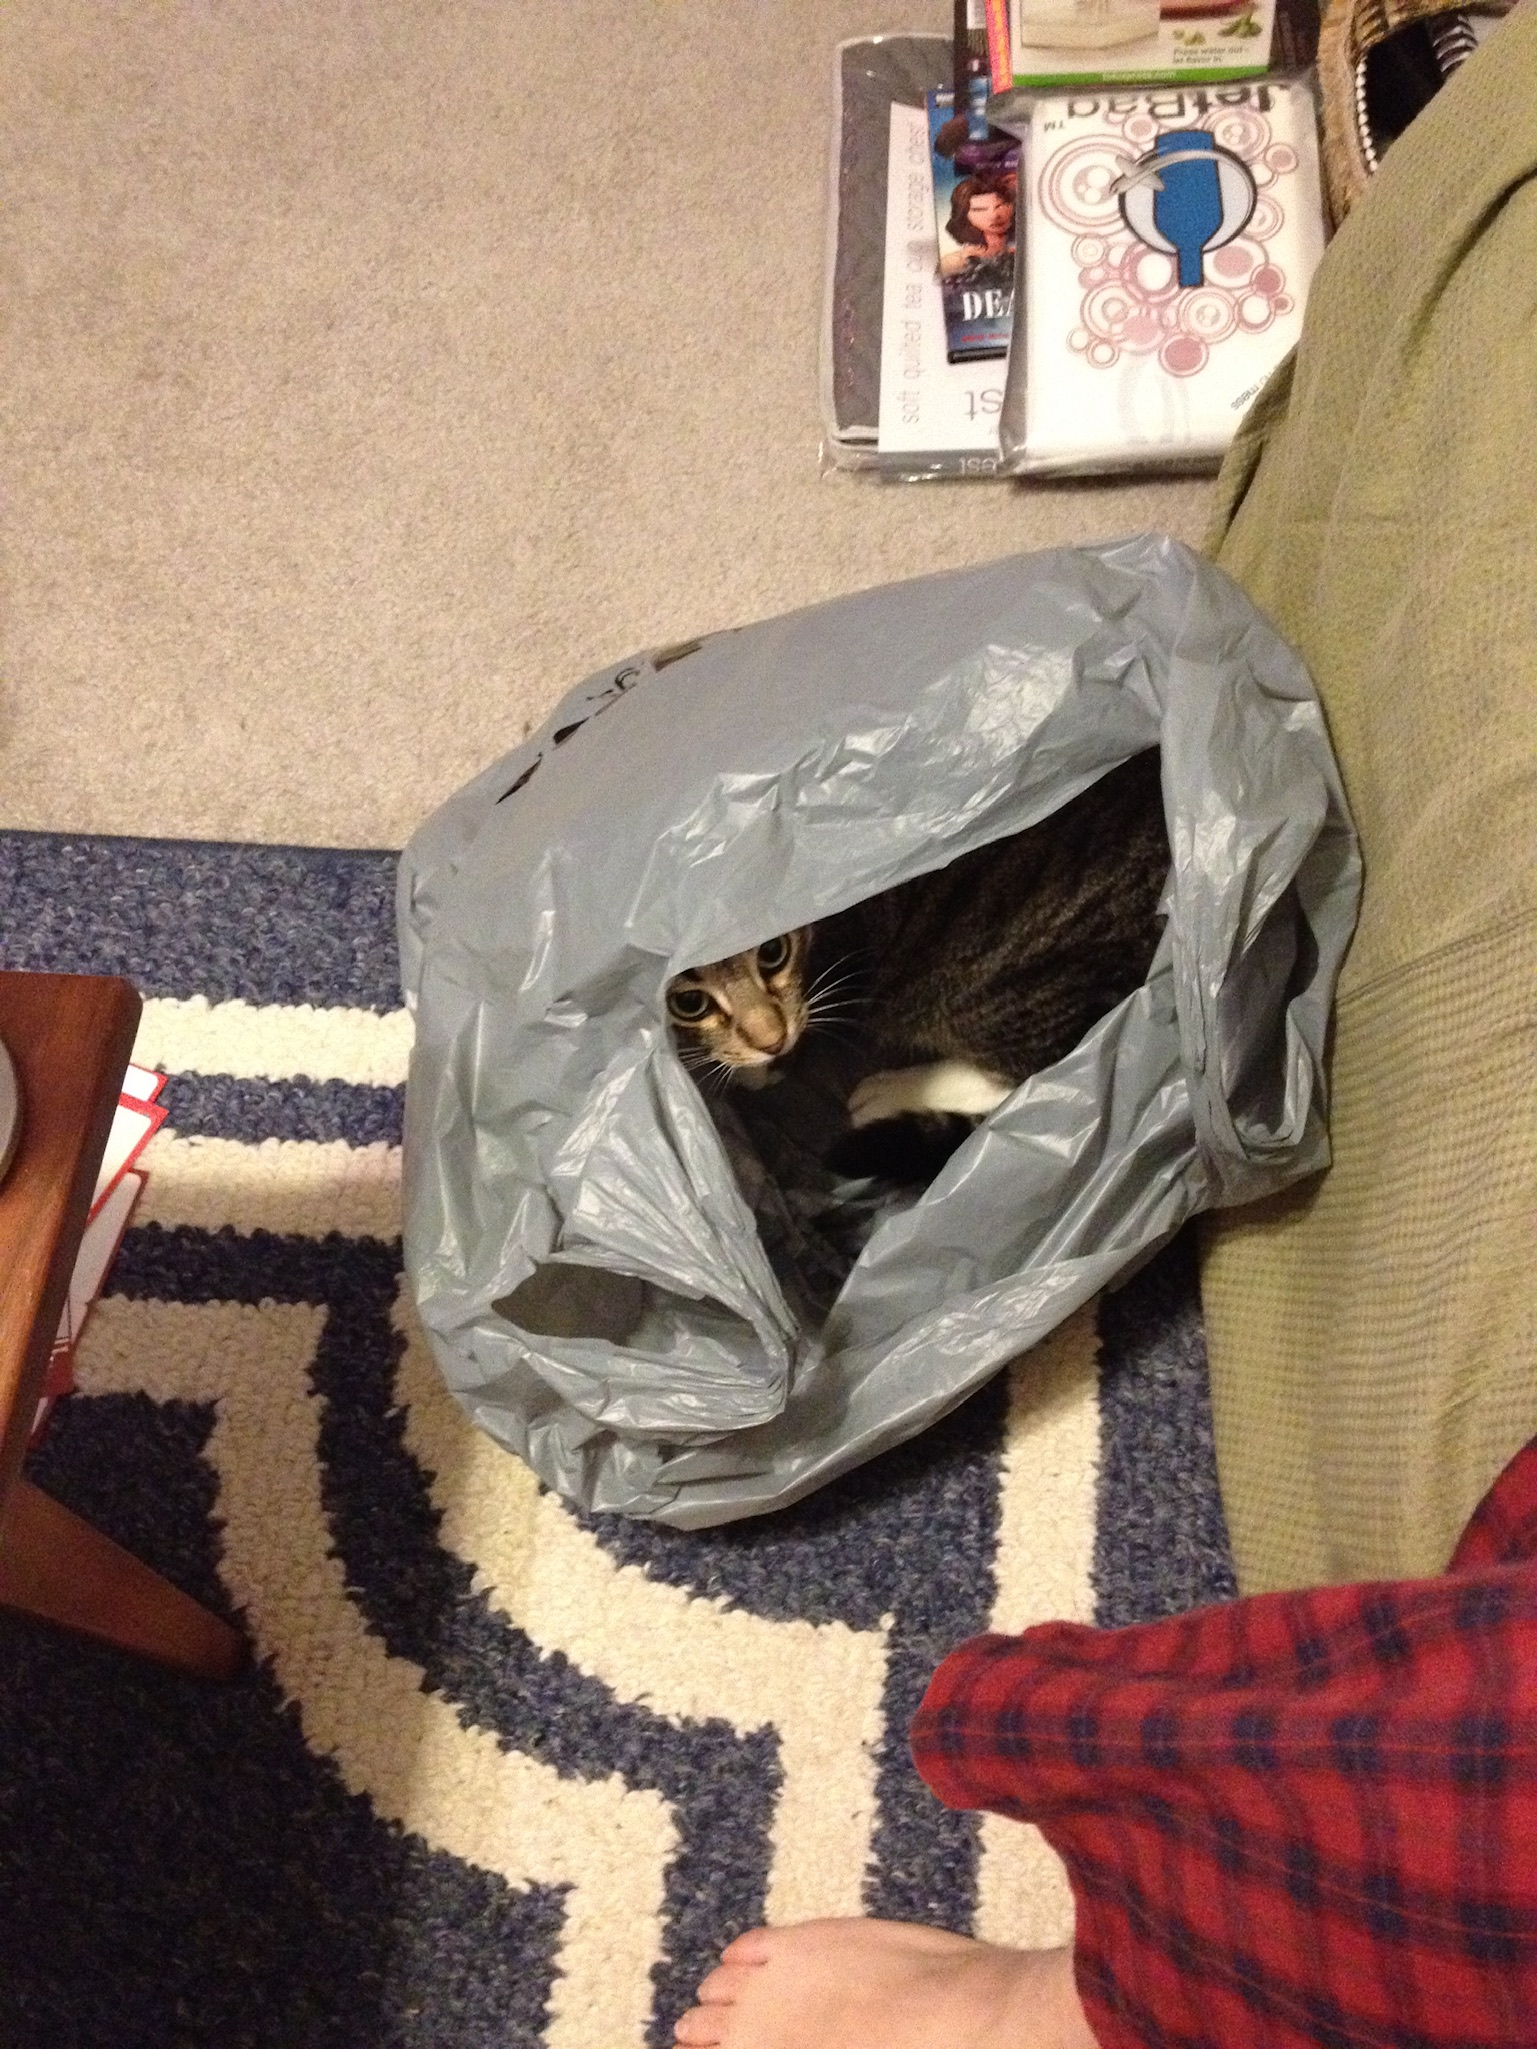 Haku in a plastic bag